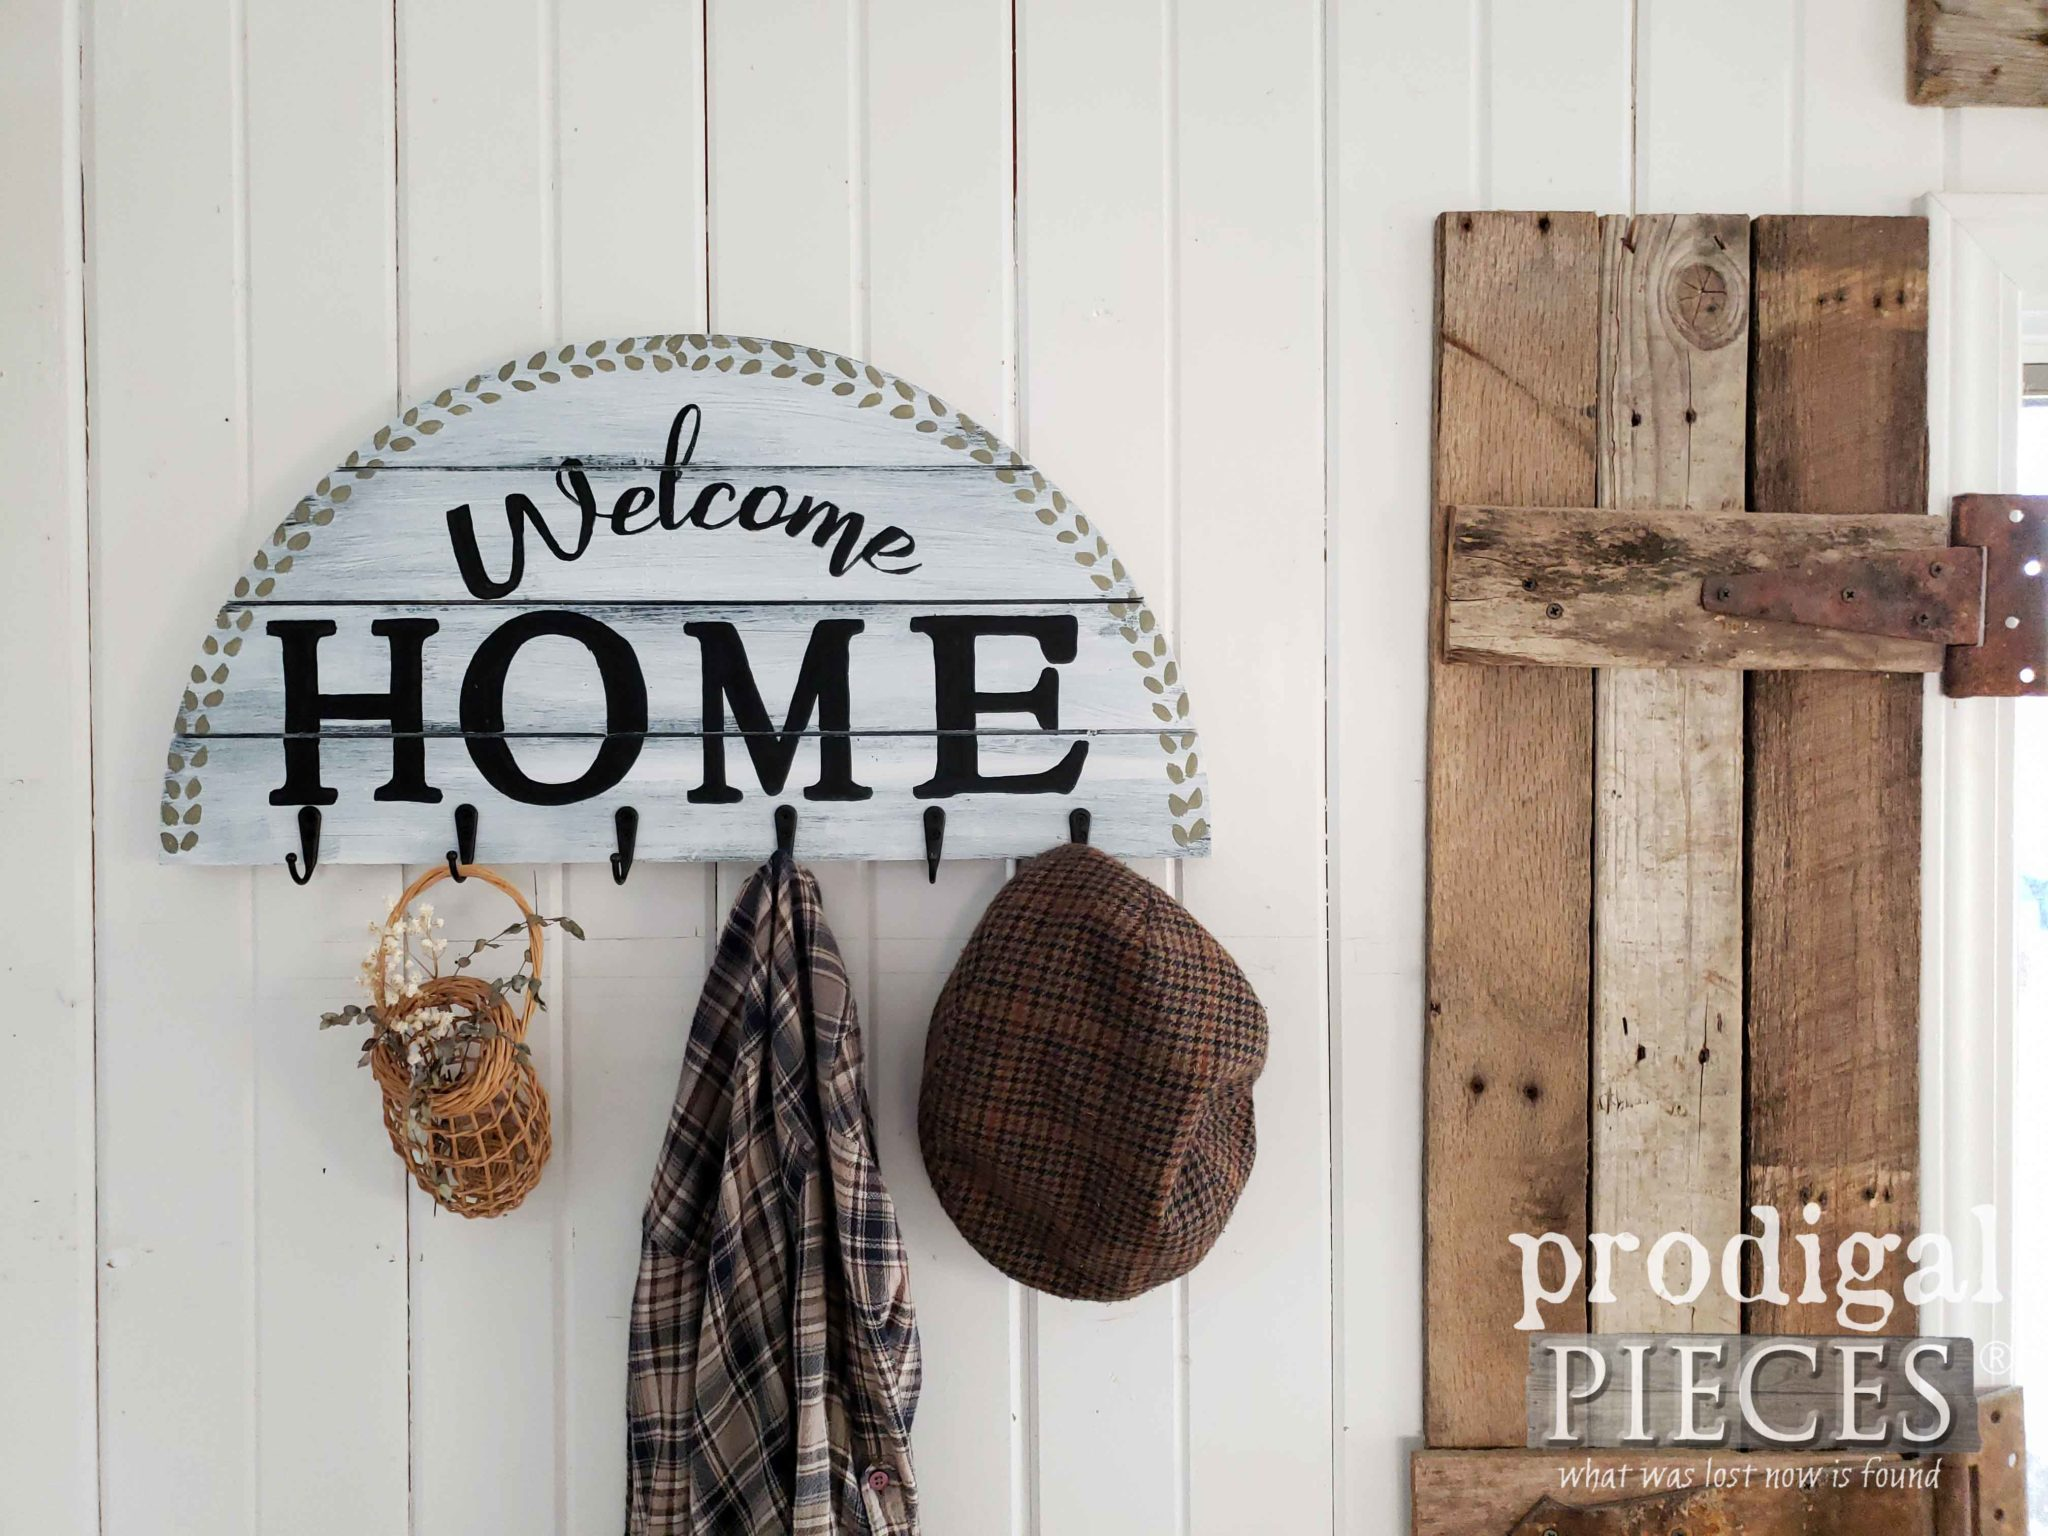 Farmhouse DIY Welcome Sign Coat Rack by Larissa of Prodigal Pieces | prodigalpieces #prodigalpieces #home #farmhouse #diy #handmade #homedecor #homedecorideas #shopping